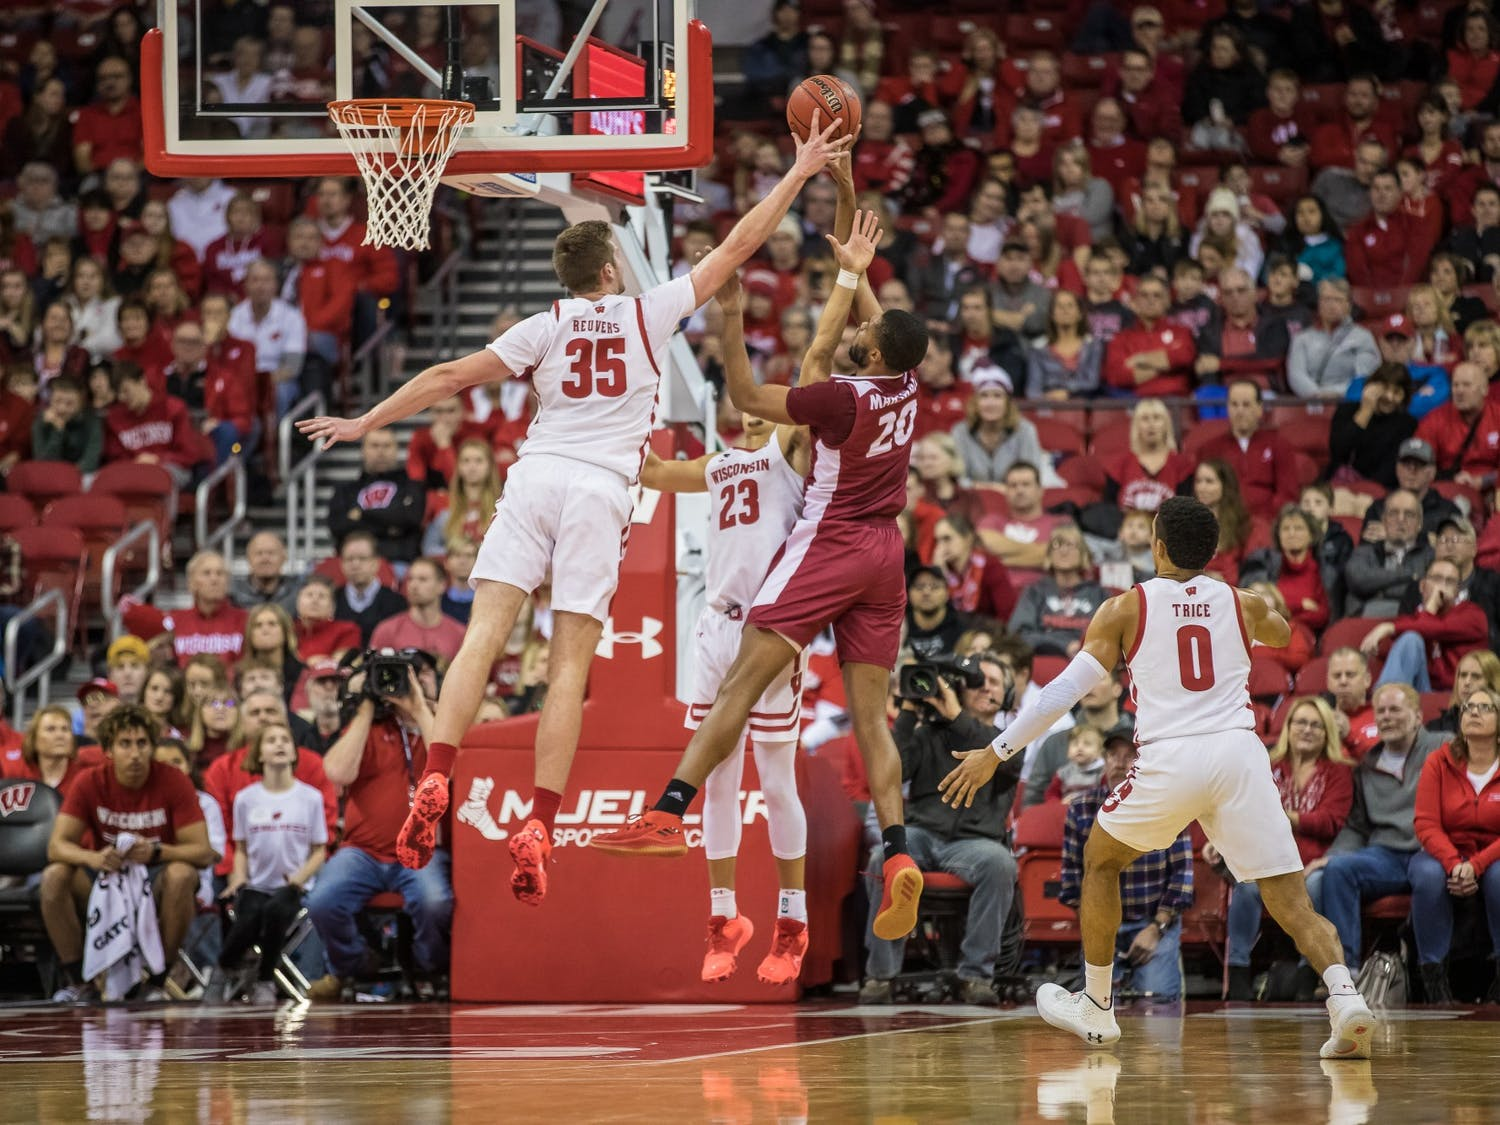 Reuvers now has 156 blocks in his career as a Badger. He passed Frank Kaminsky (153) and Ethan Happ (154) on the night.